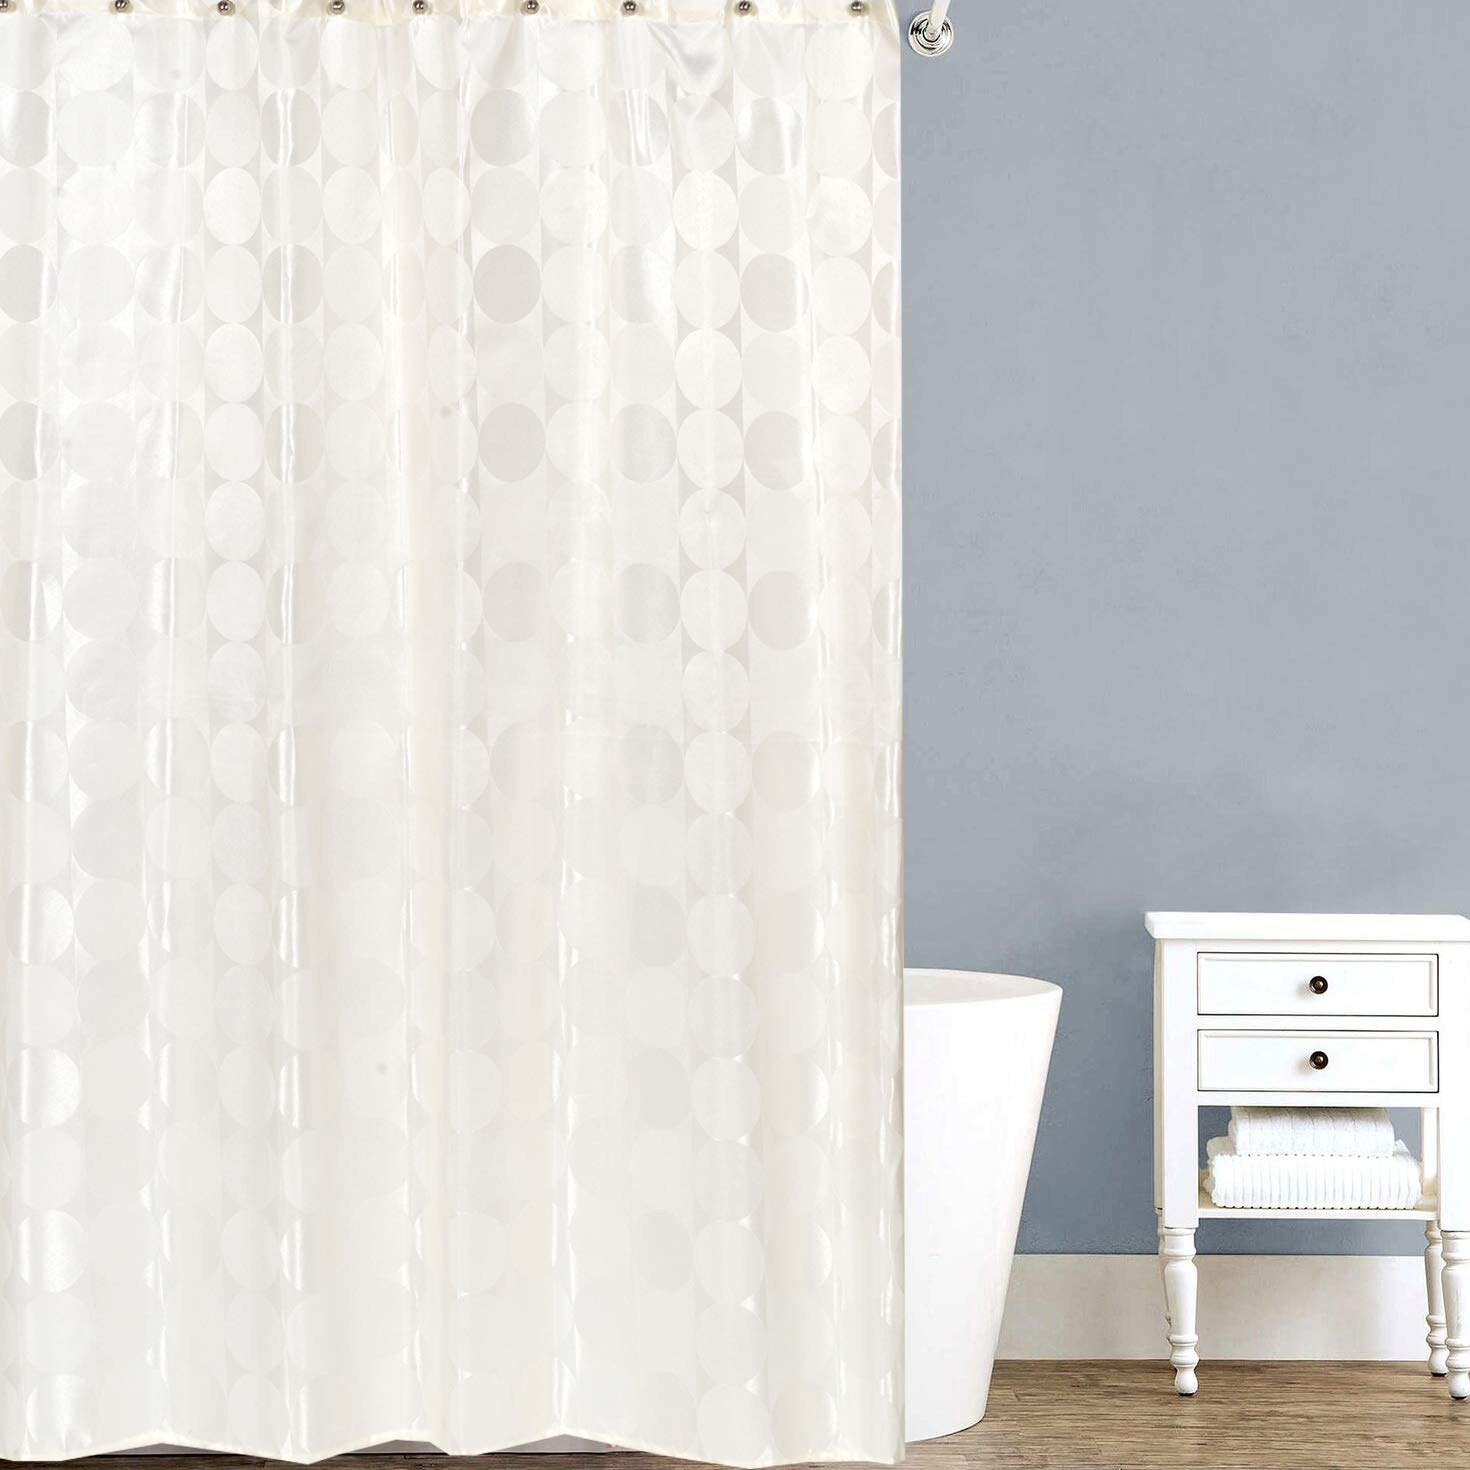 Water Resistant Easy Hang Ivory Sweet Home Collection Curtain 72 x 70 Anti-Mildew Material Fun Designs for Shower Stalls /& Bathtubs Standard Machine Washable Fabric